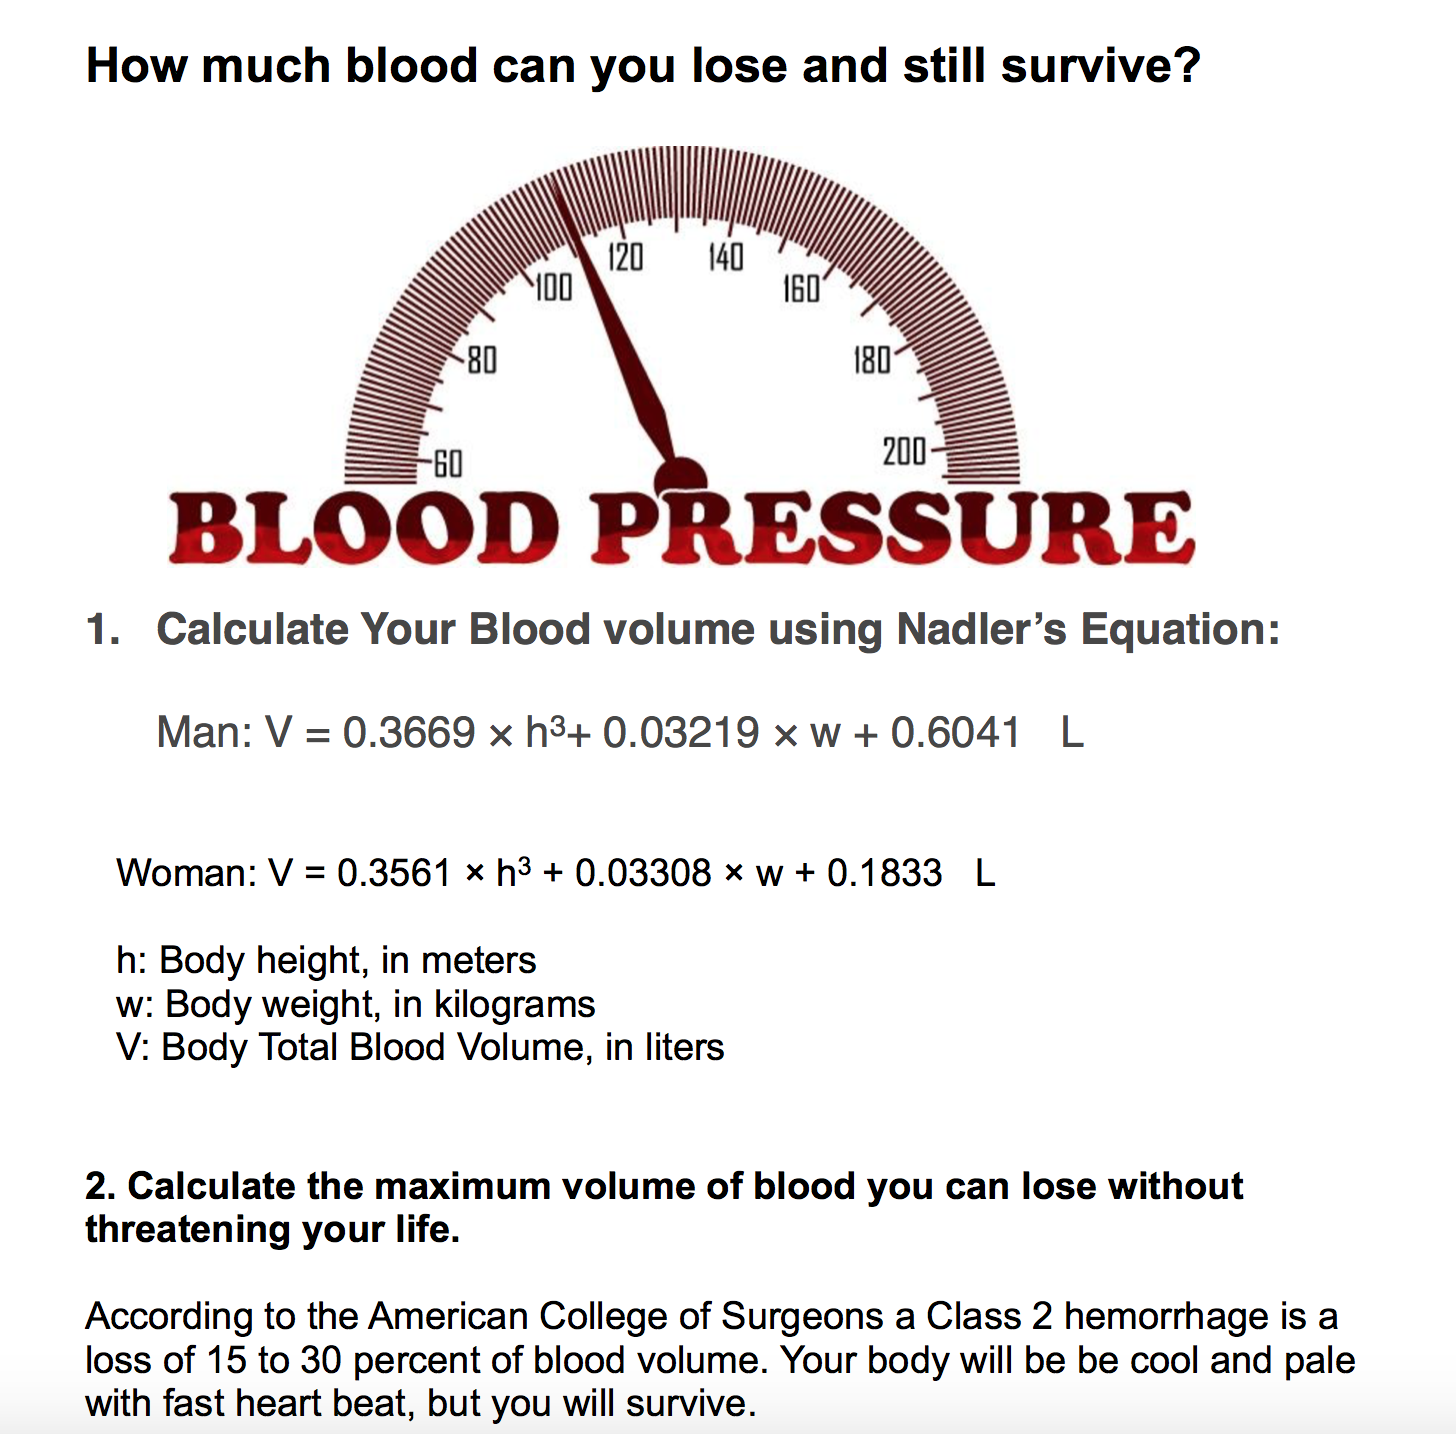 Worksheet Food Pdf Algebra  Mathspig Blog Algebra 2 Worksheet Answers Excel with Reading Science Worksheets Pdf Worksheet Herehow Much Blood Can You Lose And Still Survive Adding And Subtracting Integers Worksheets